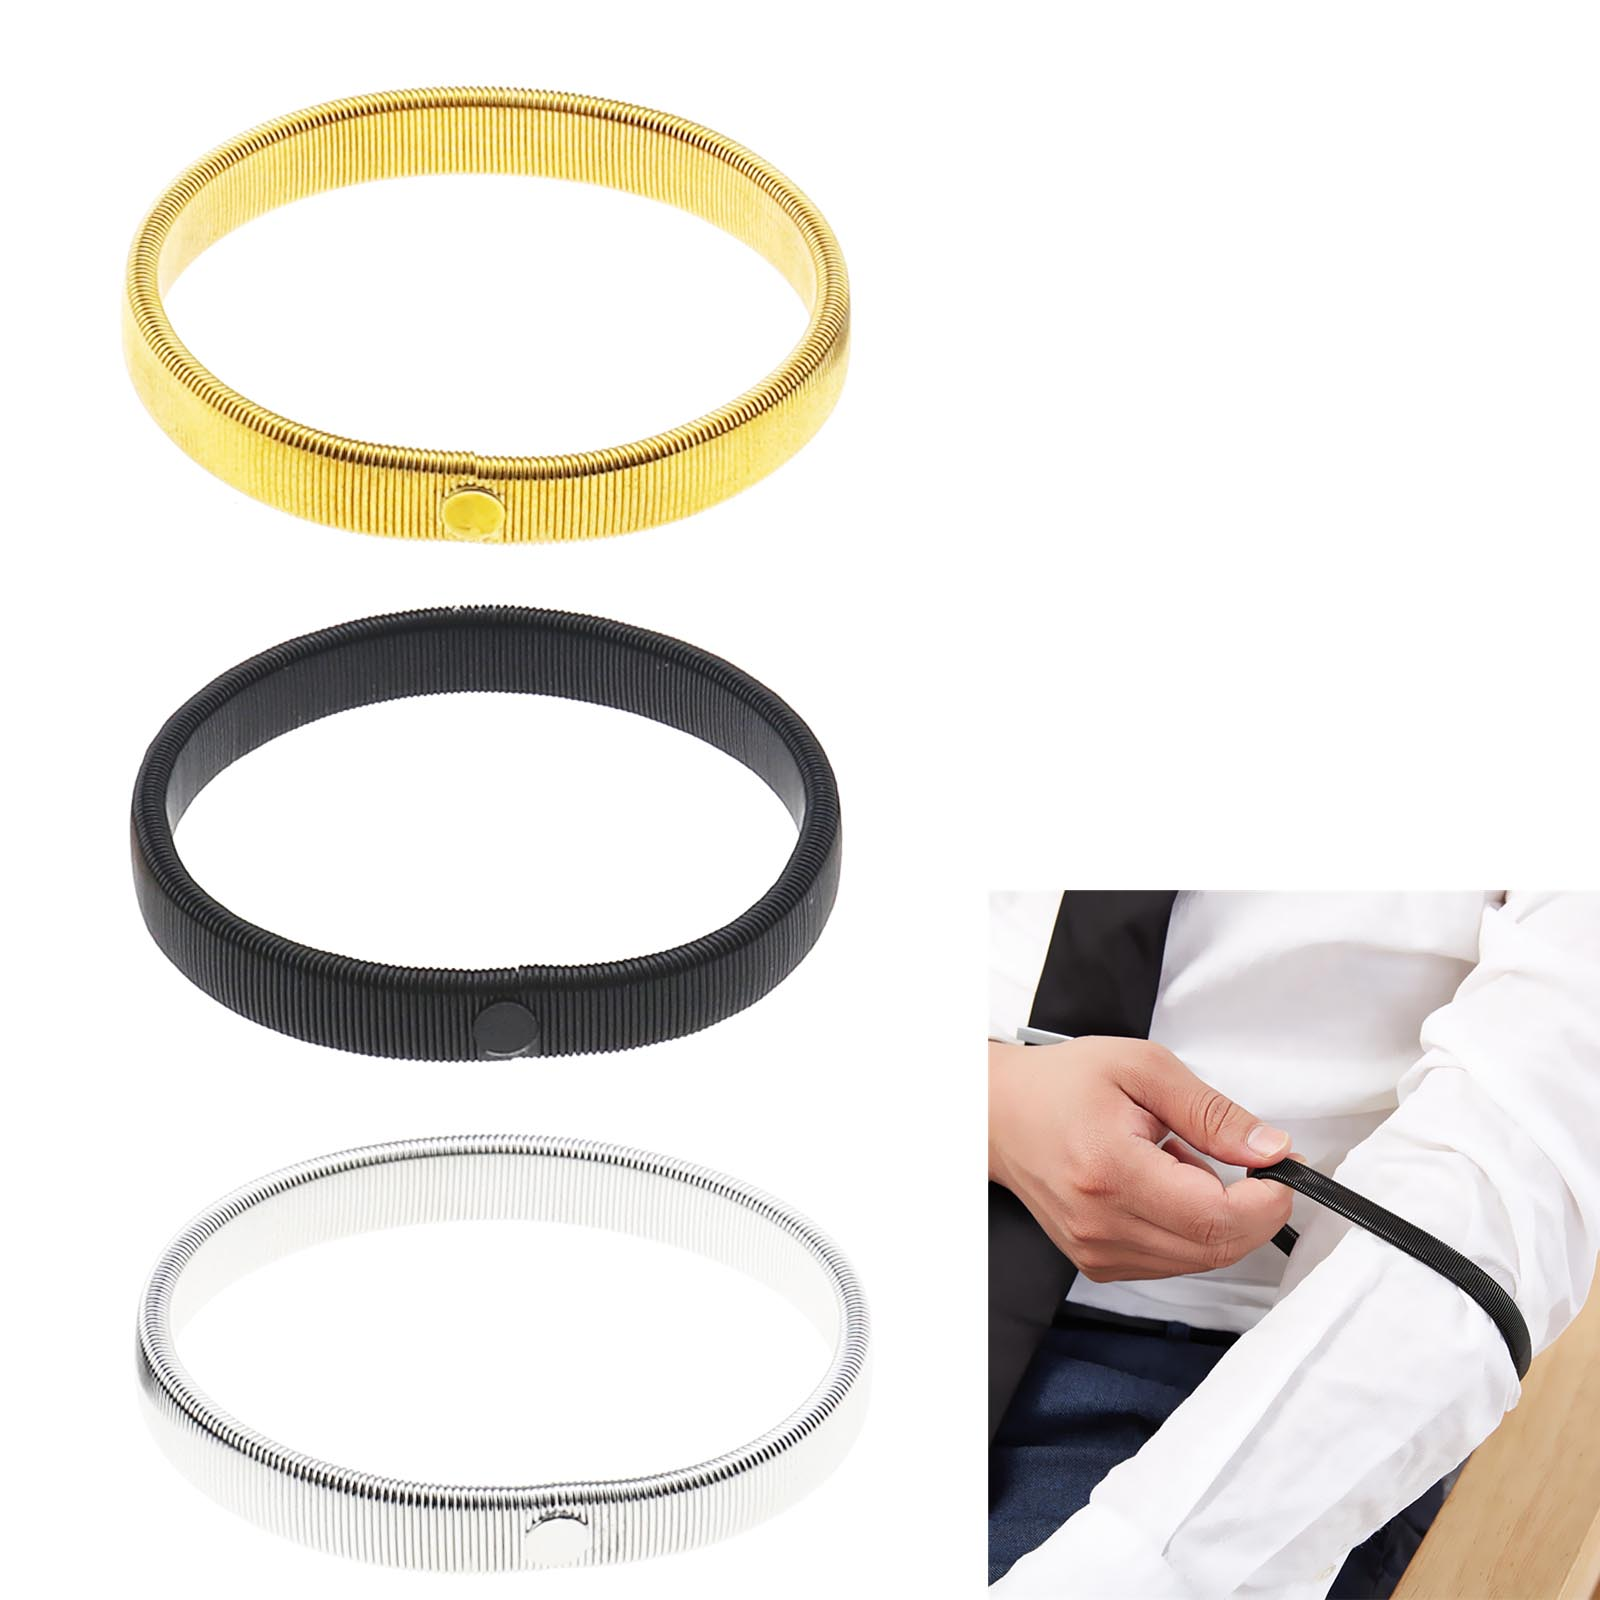 Anti-Slip Metal Shirt Sleeve Holders Armband Arm For Band Stretch Elastic 6 PCS